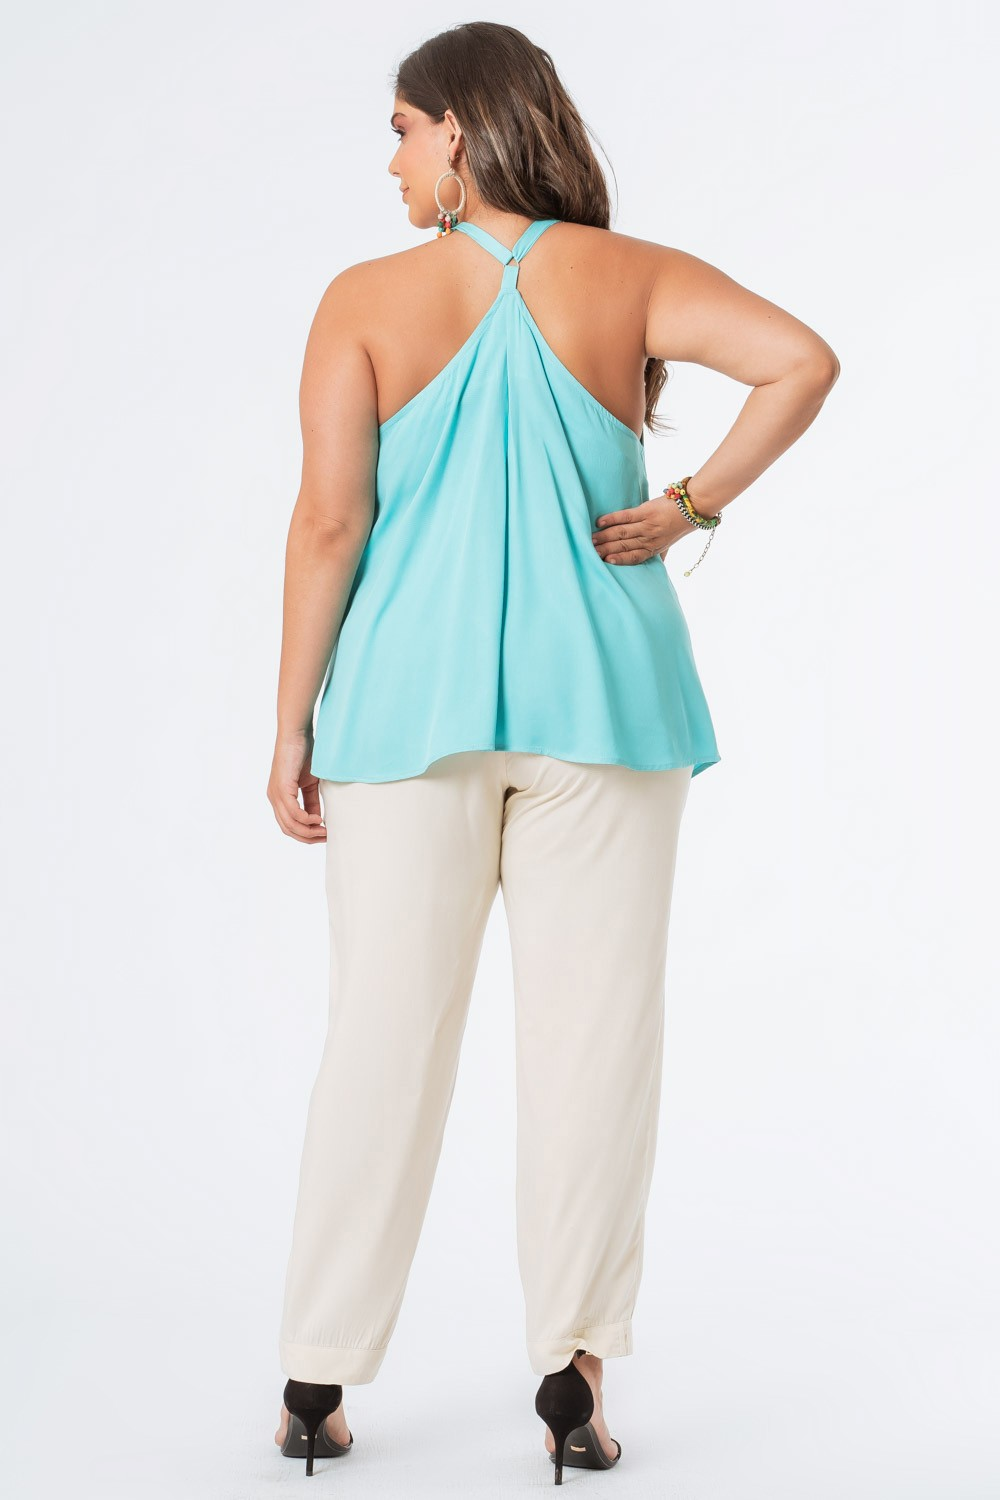 REGATA LISA PLUS SIZE ALÇA AVIAMENTO AZUL